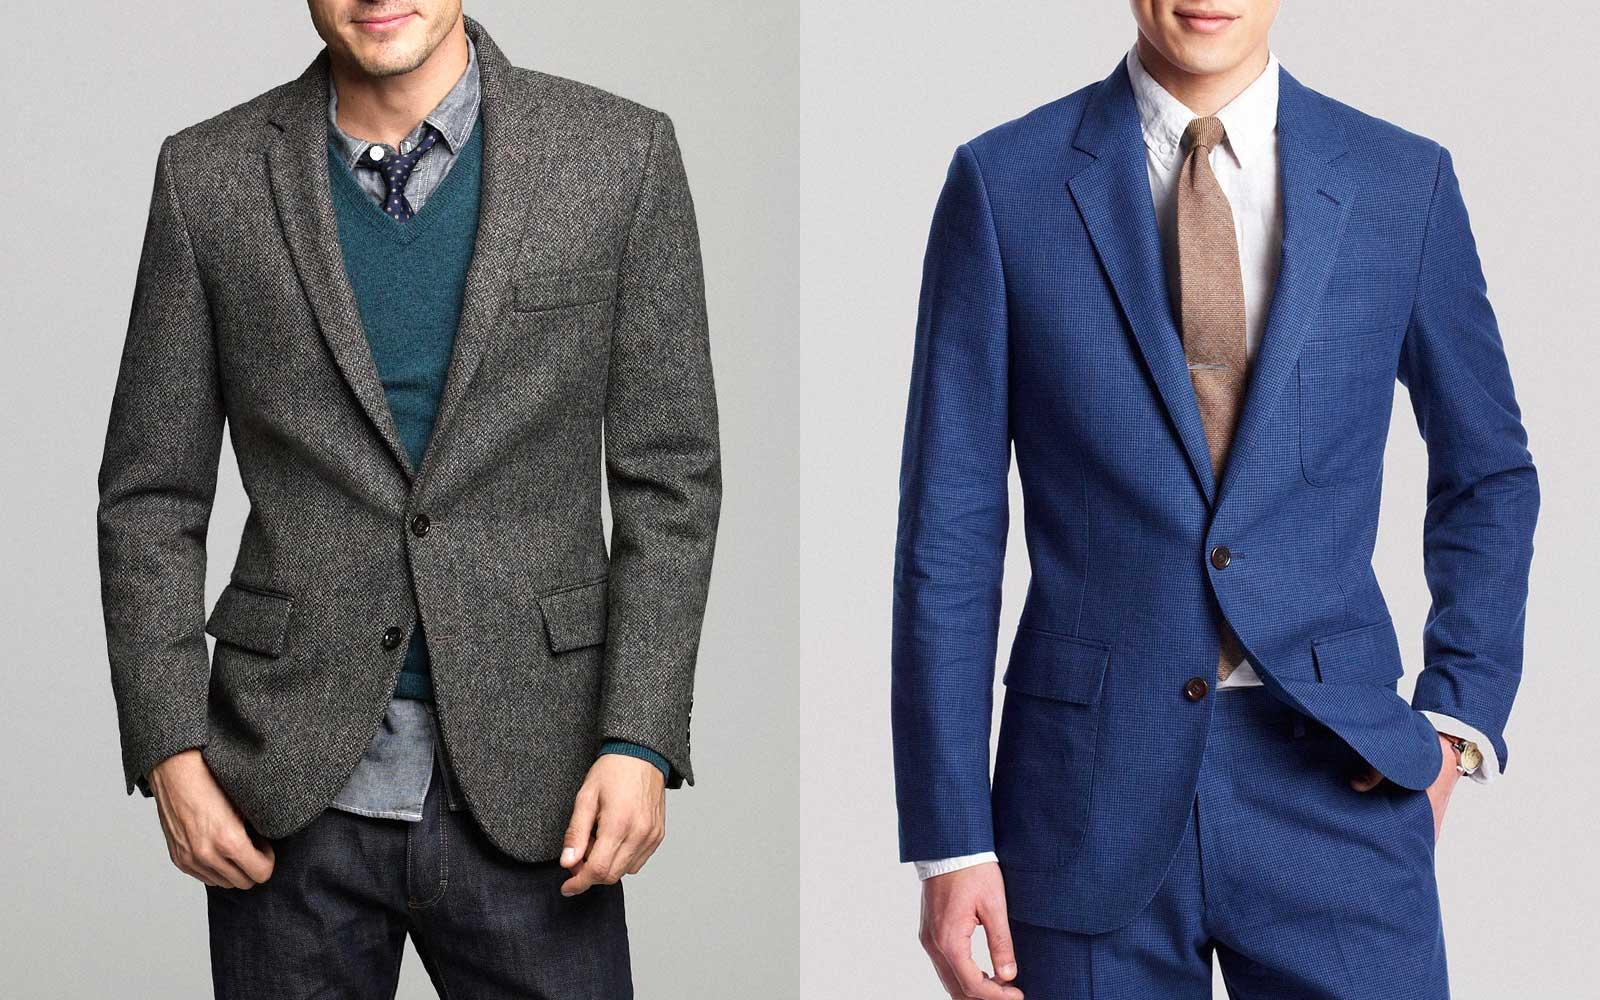 Suit Jacket vs. Sport Coat